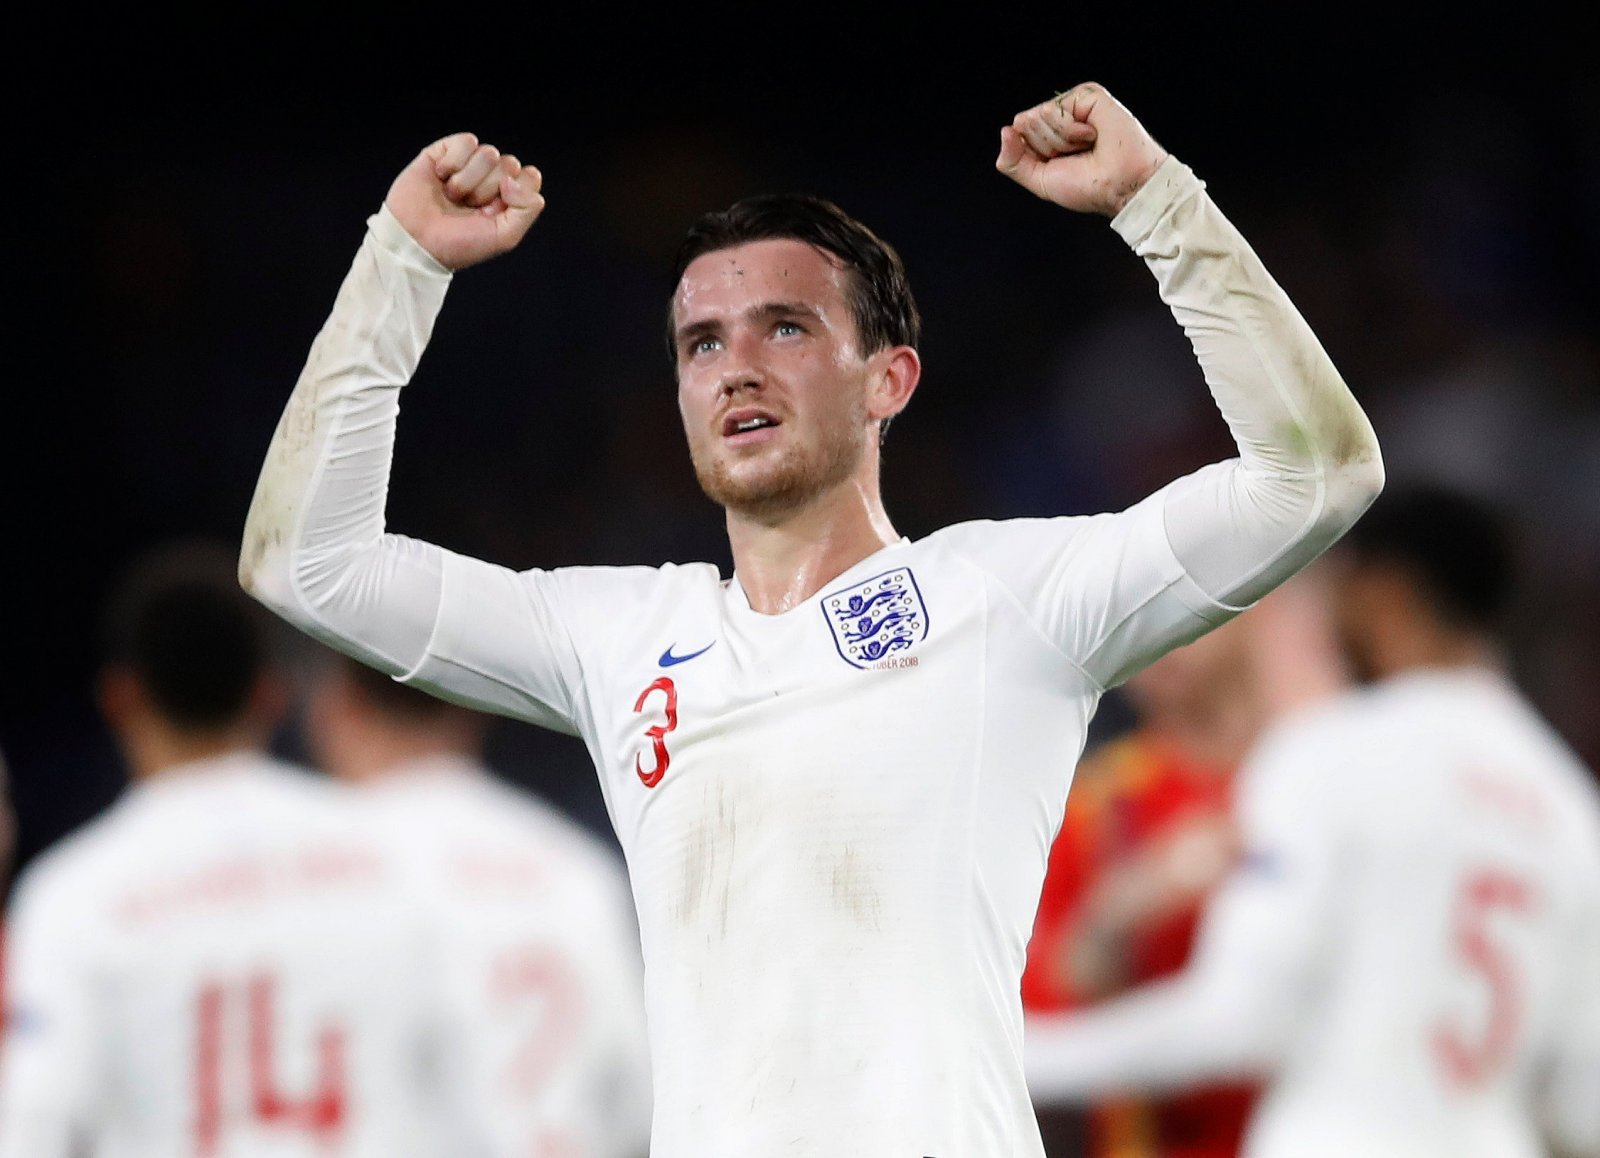 One that got away: Liverpool and Ben Chilwell